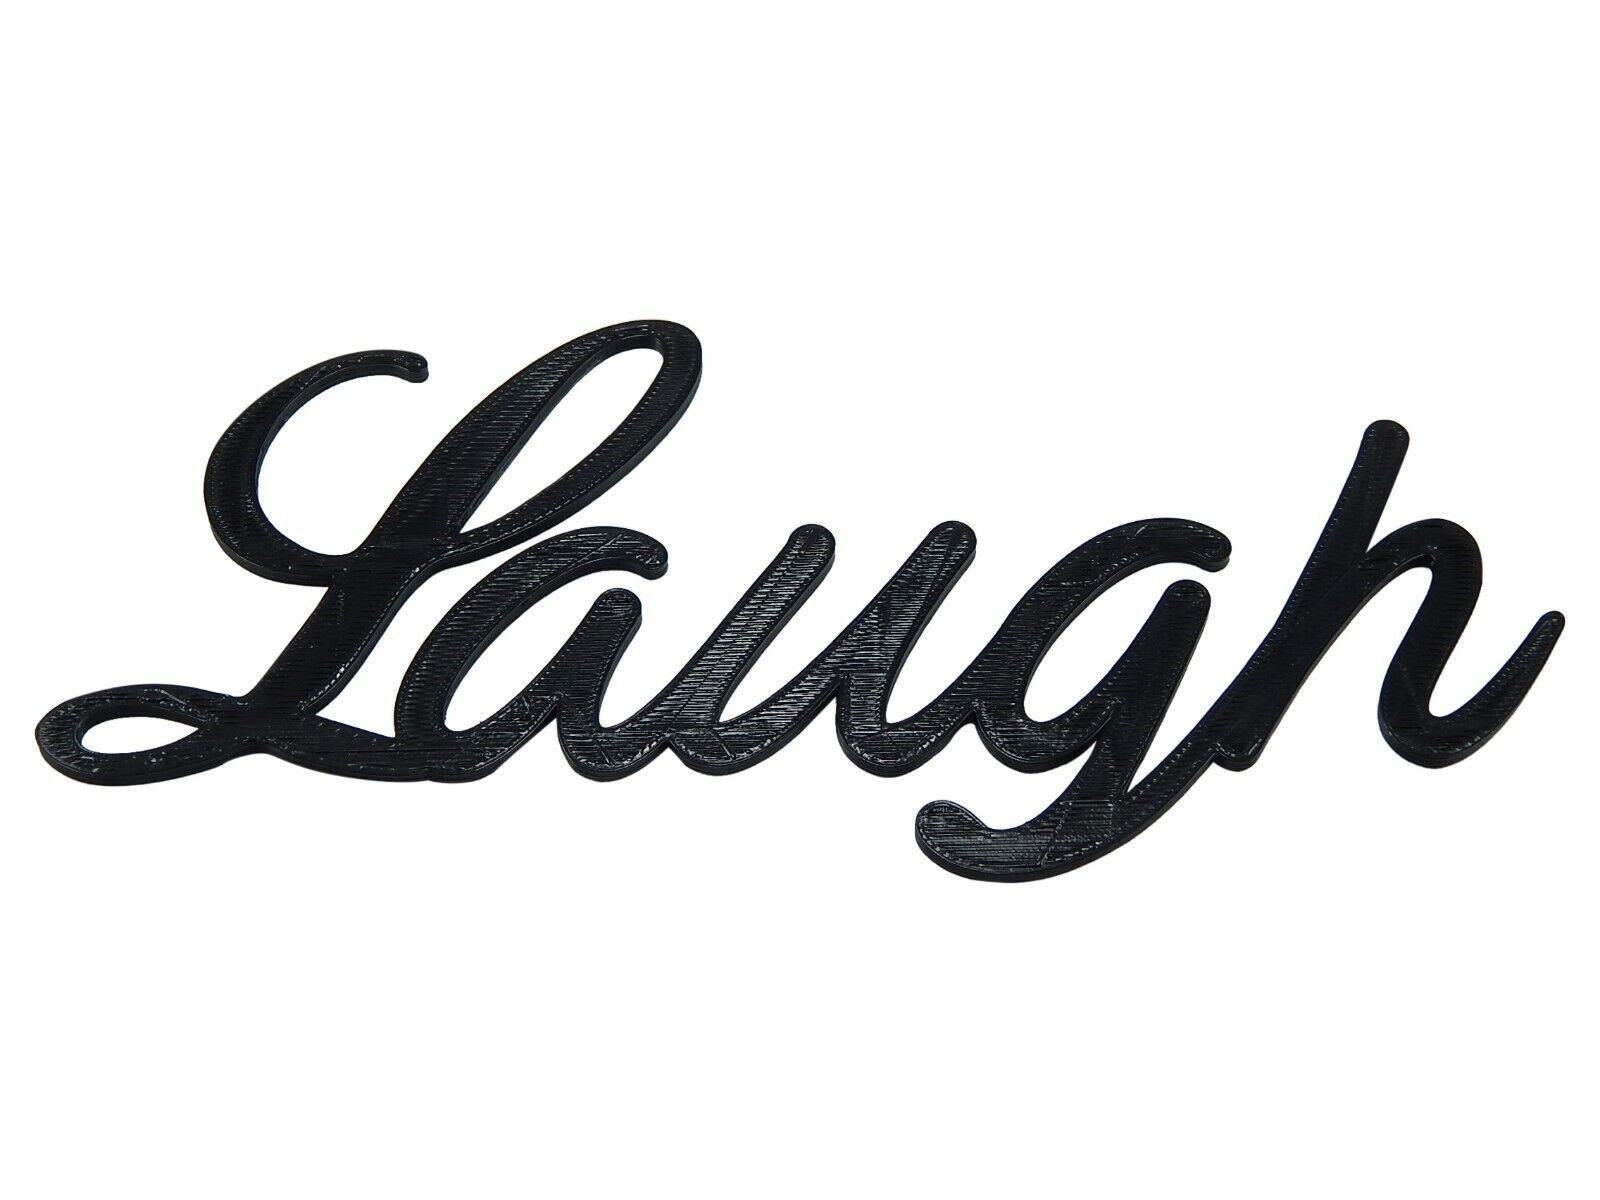 Laugh Word Art Sign Home Kitchen Decor Wall Hanging Cursive Script Typography For Sale Online